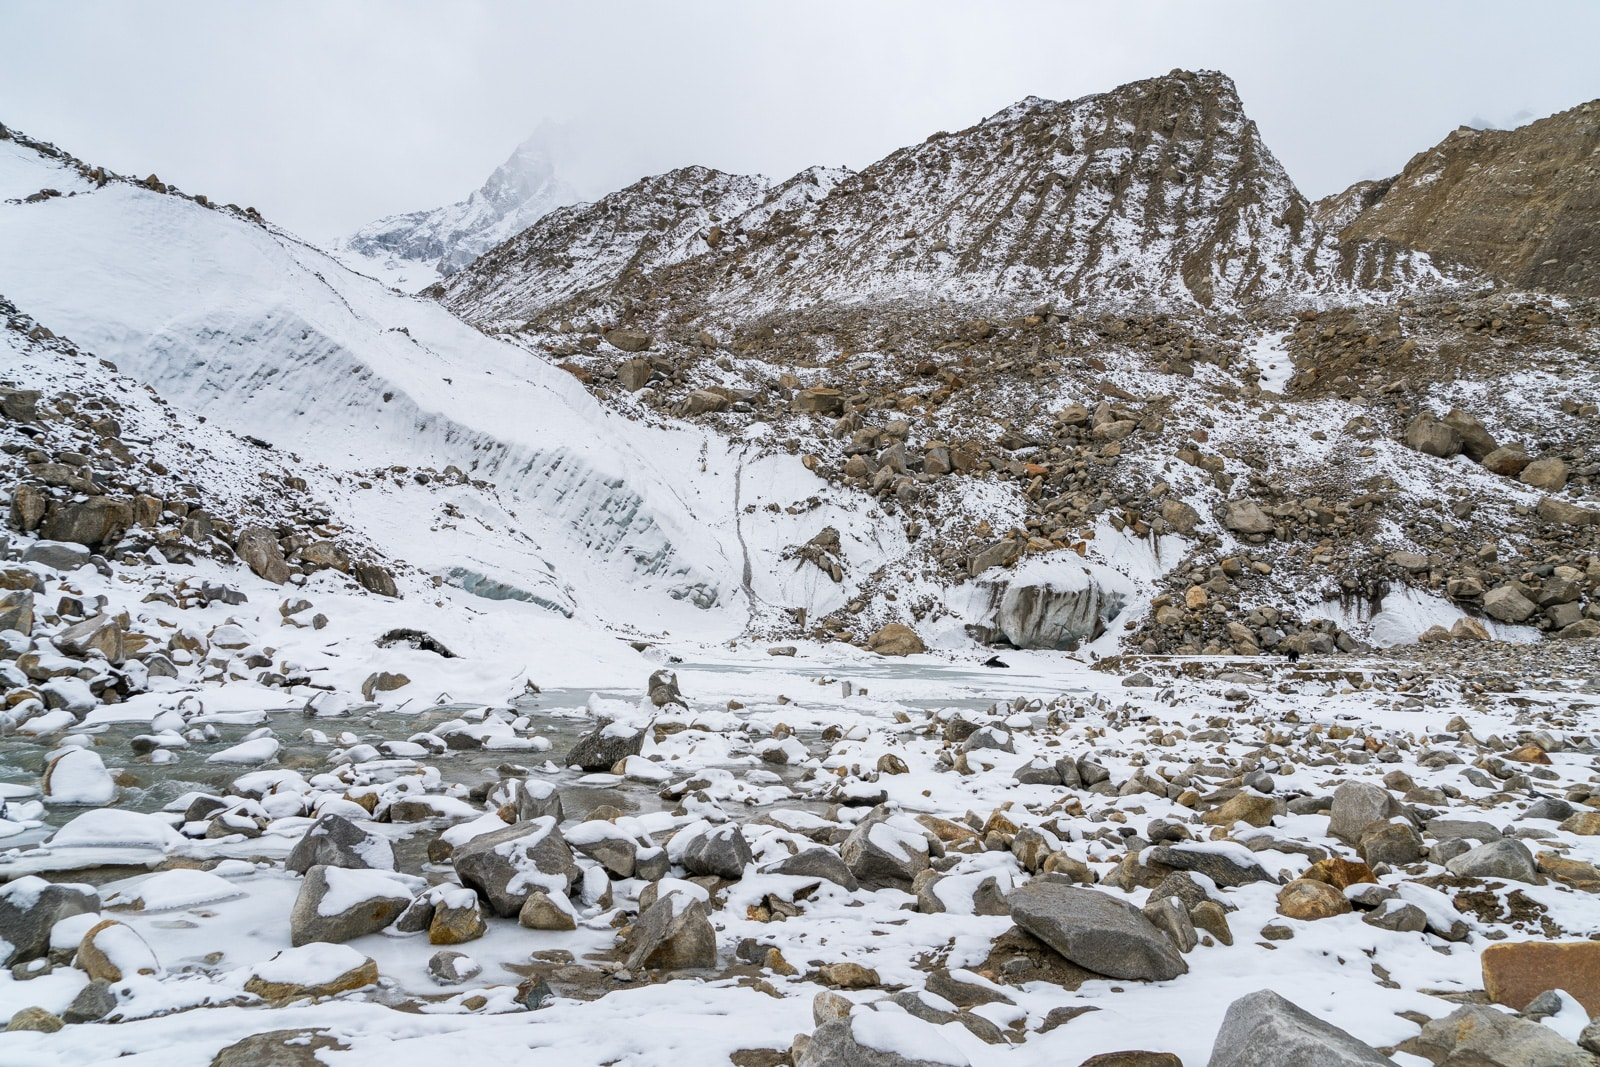 Guide to trekking to the start of the Ganges River in Uttarakhand, India - Gomukh with snow - Lost With Purpose travel blog